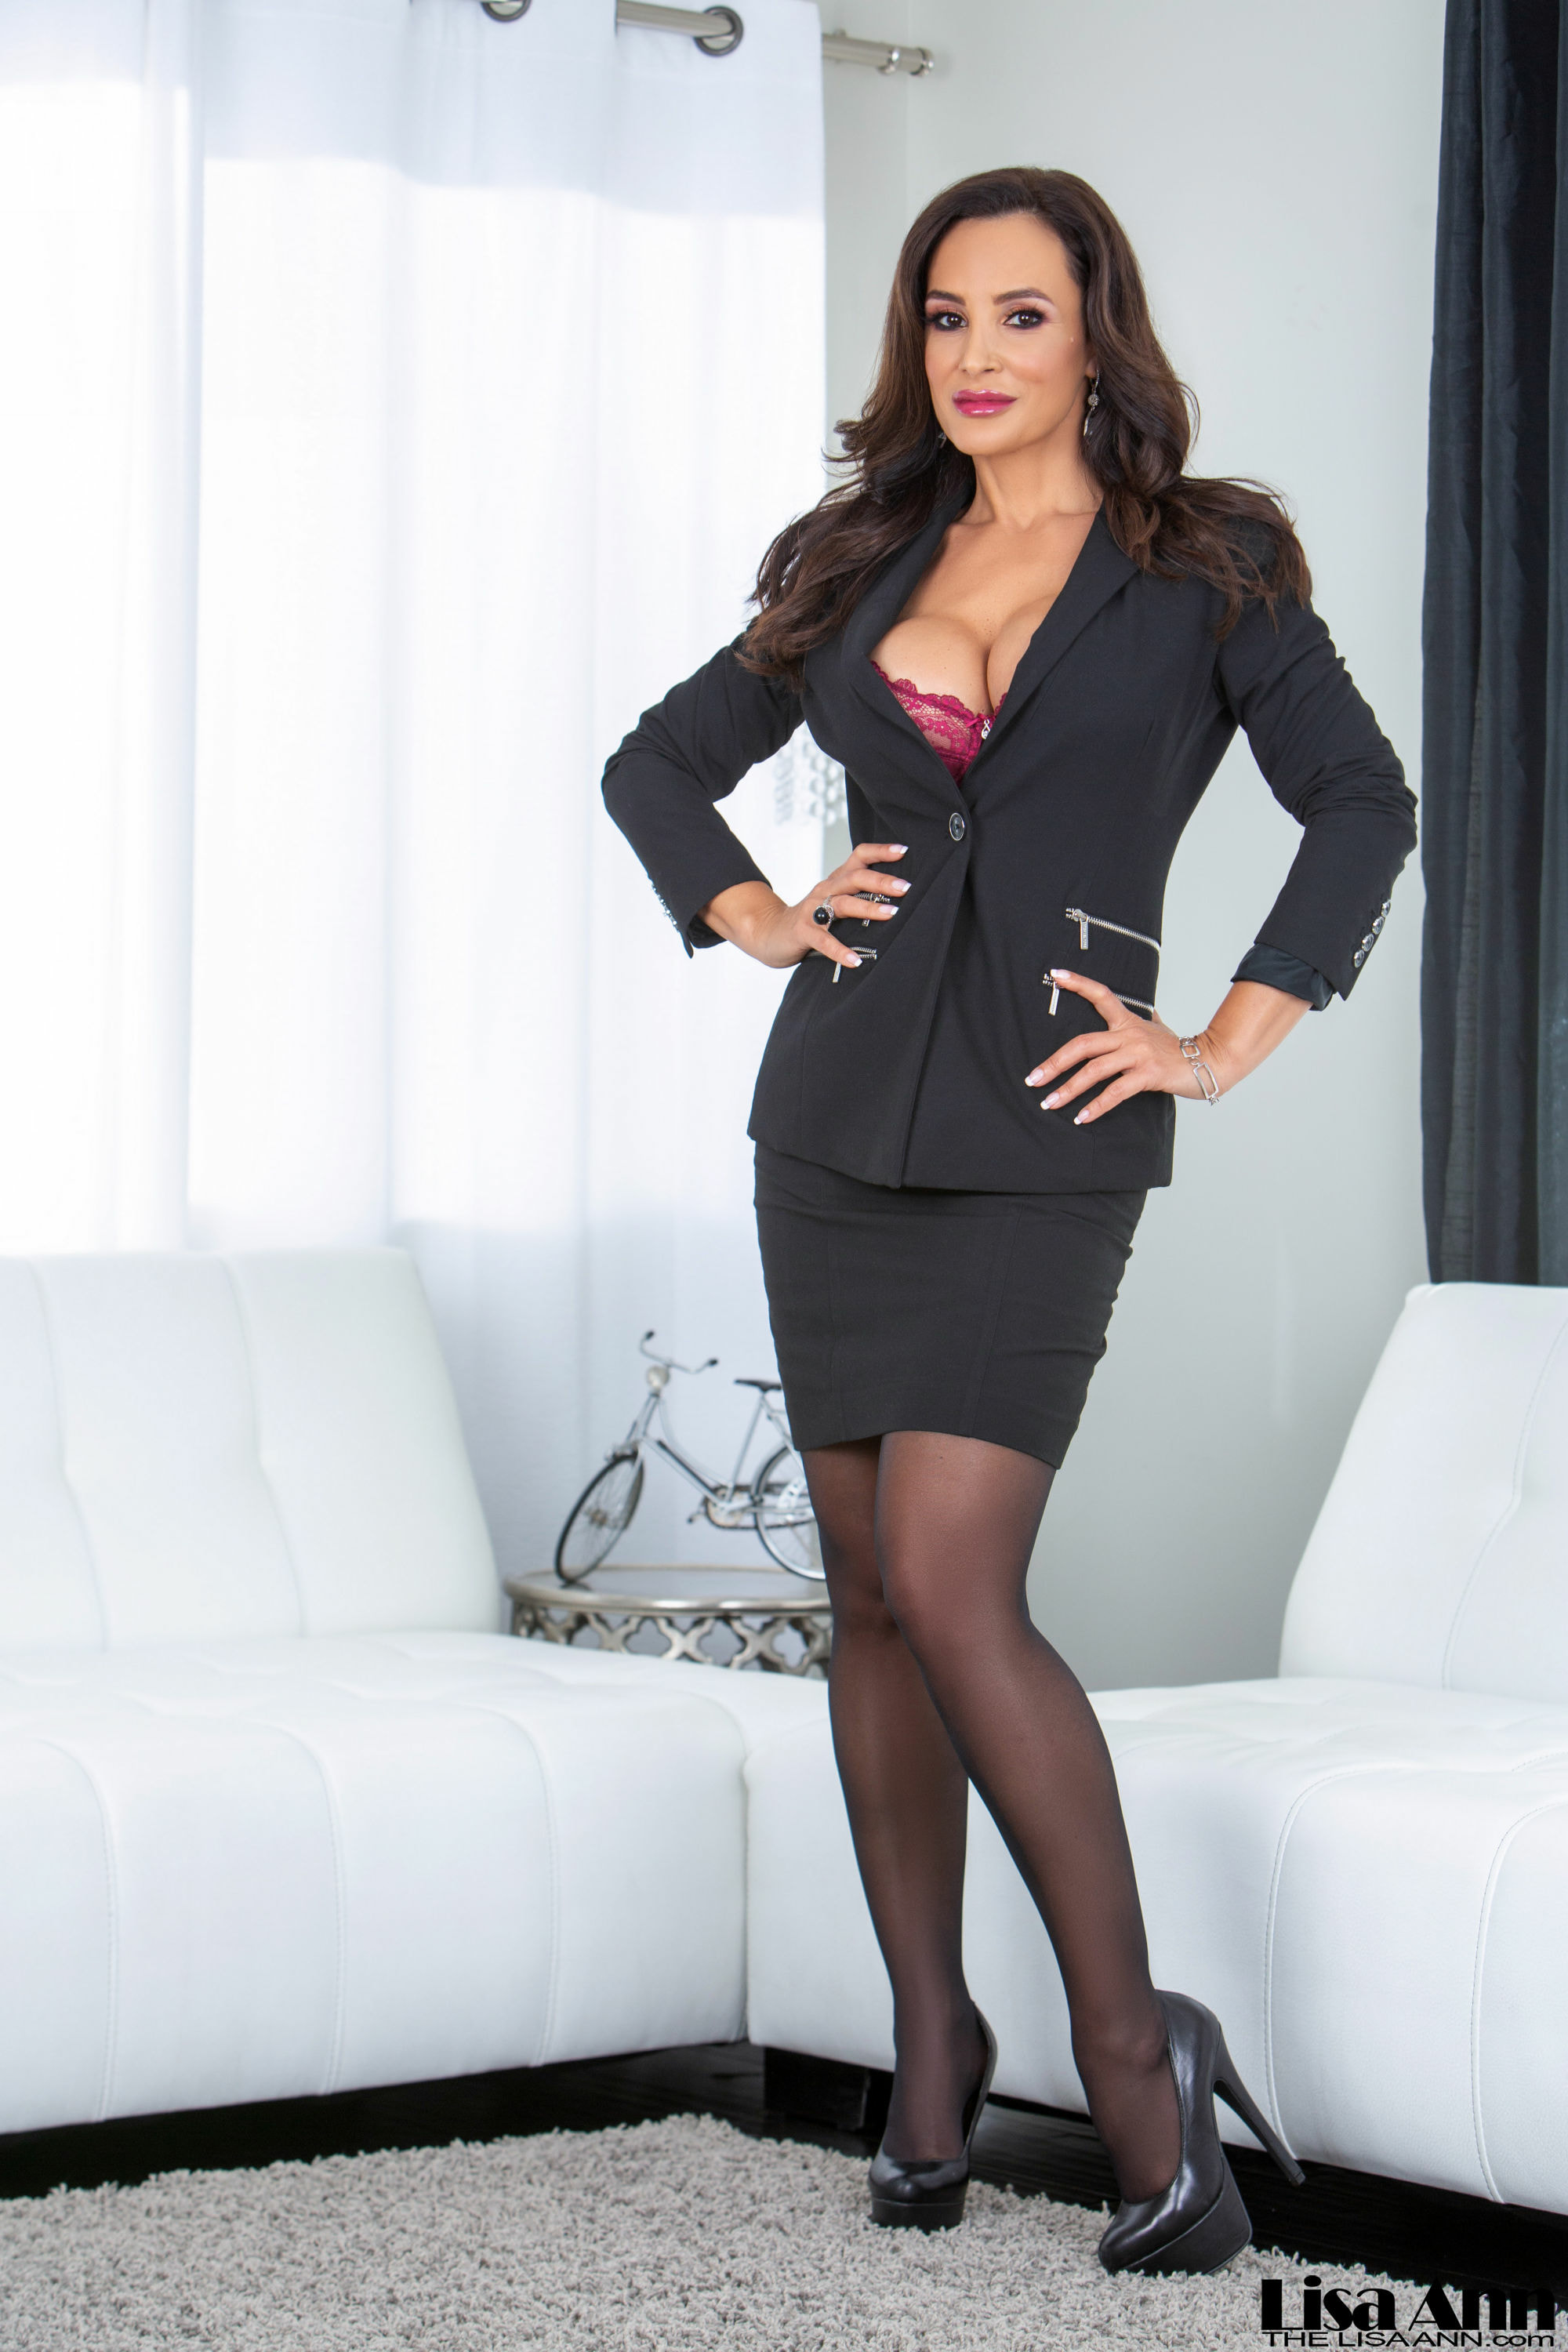 Lisa Ann Big Tits Very Tight Business Suit and Skirt